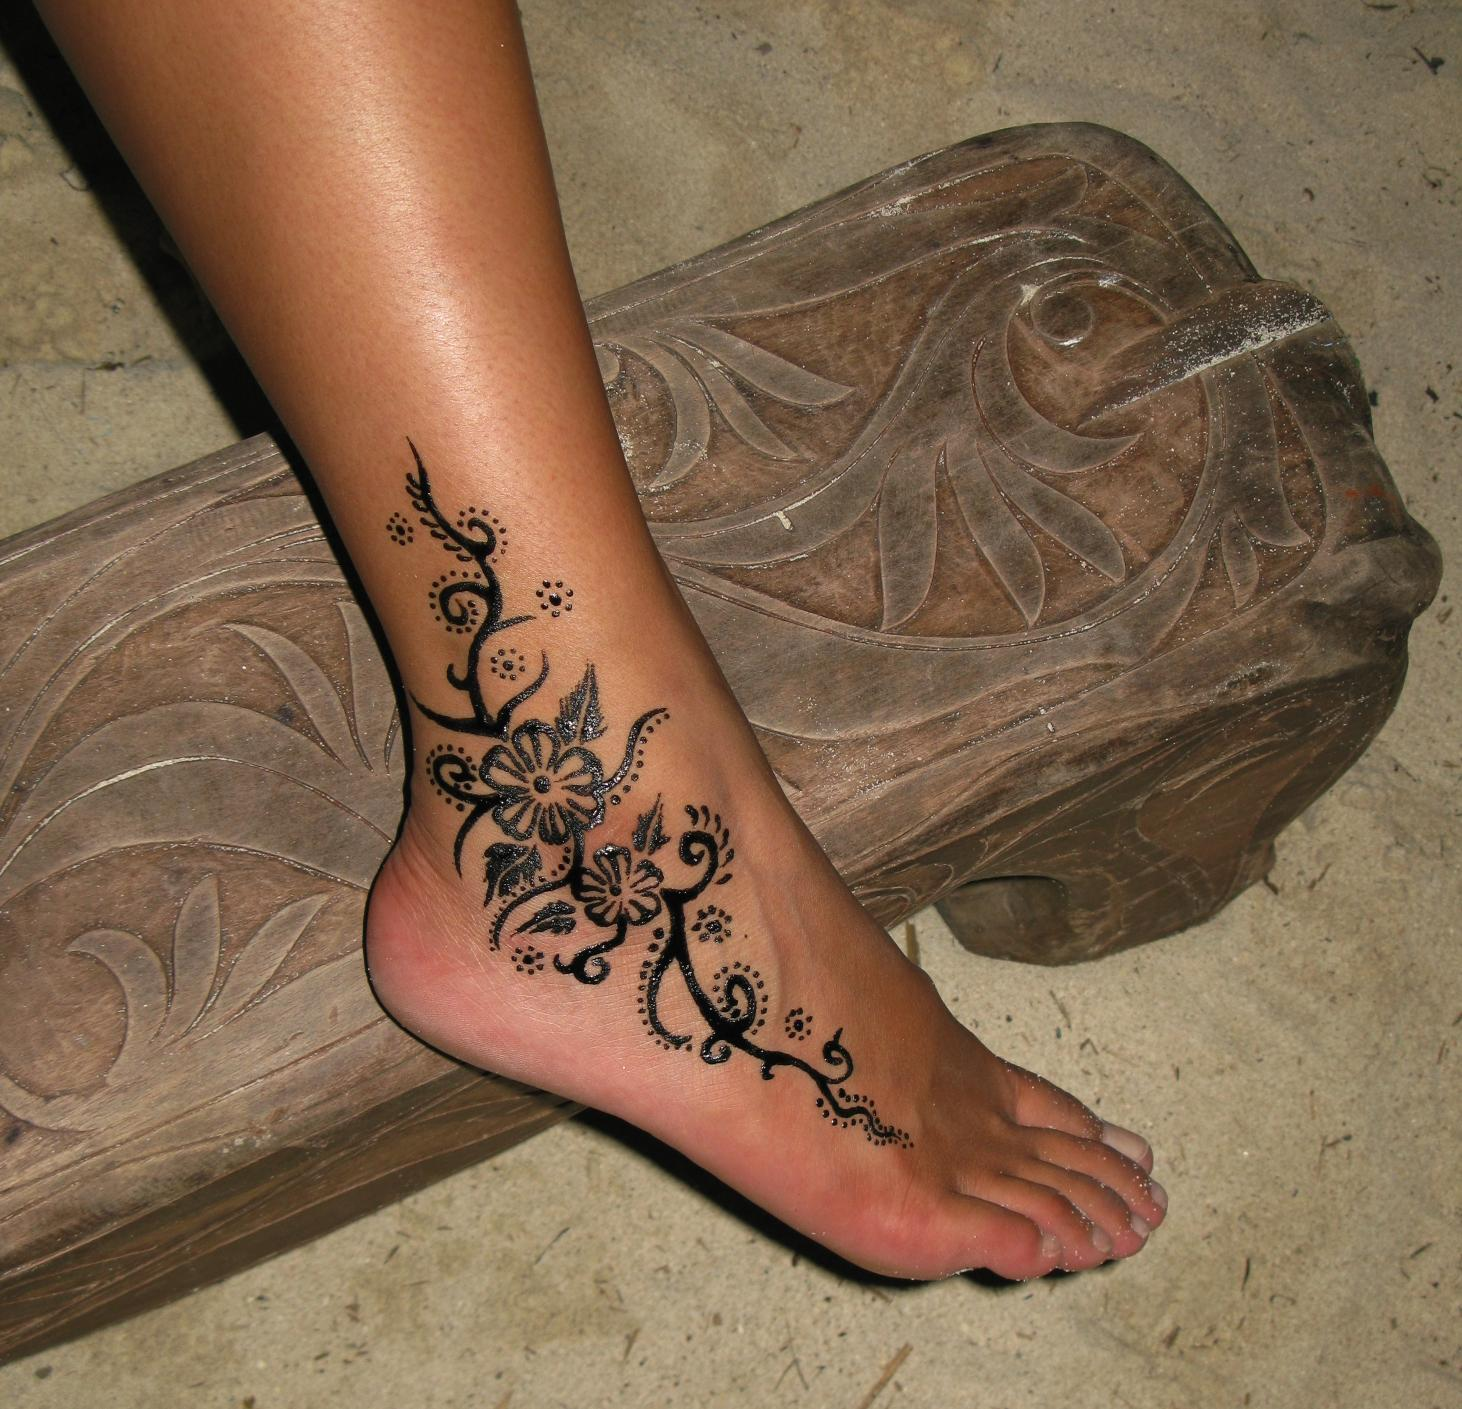 Henna Ankle Tattoo Designs: Henna Tattoo Images & Designs